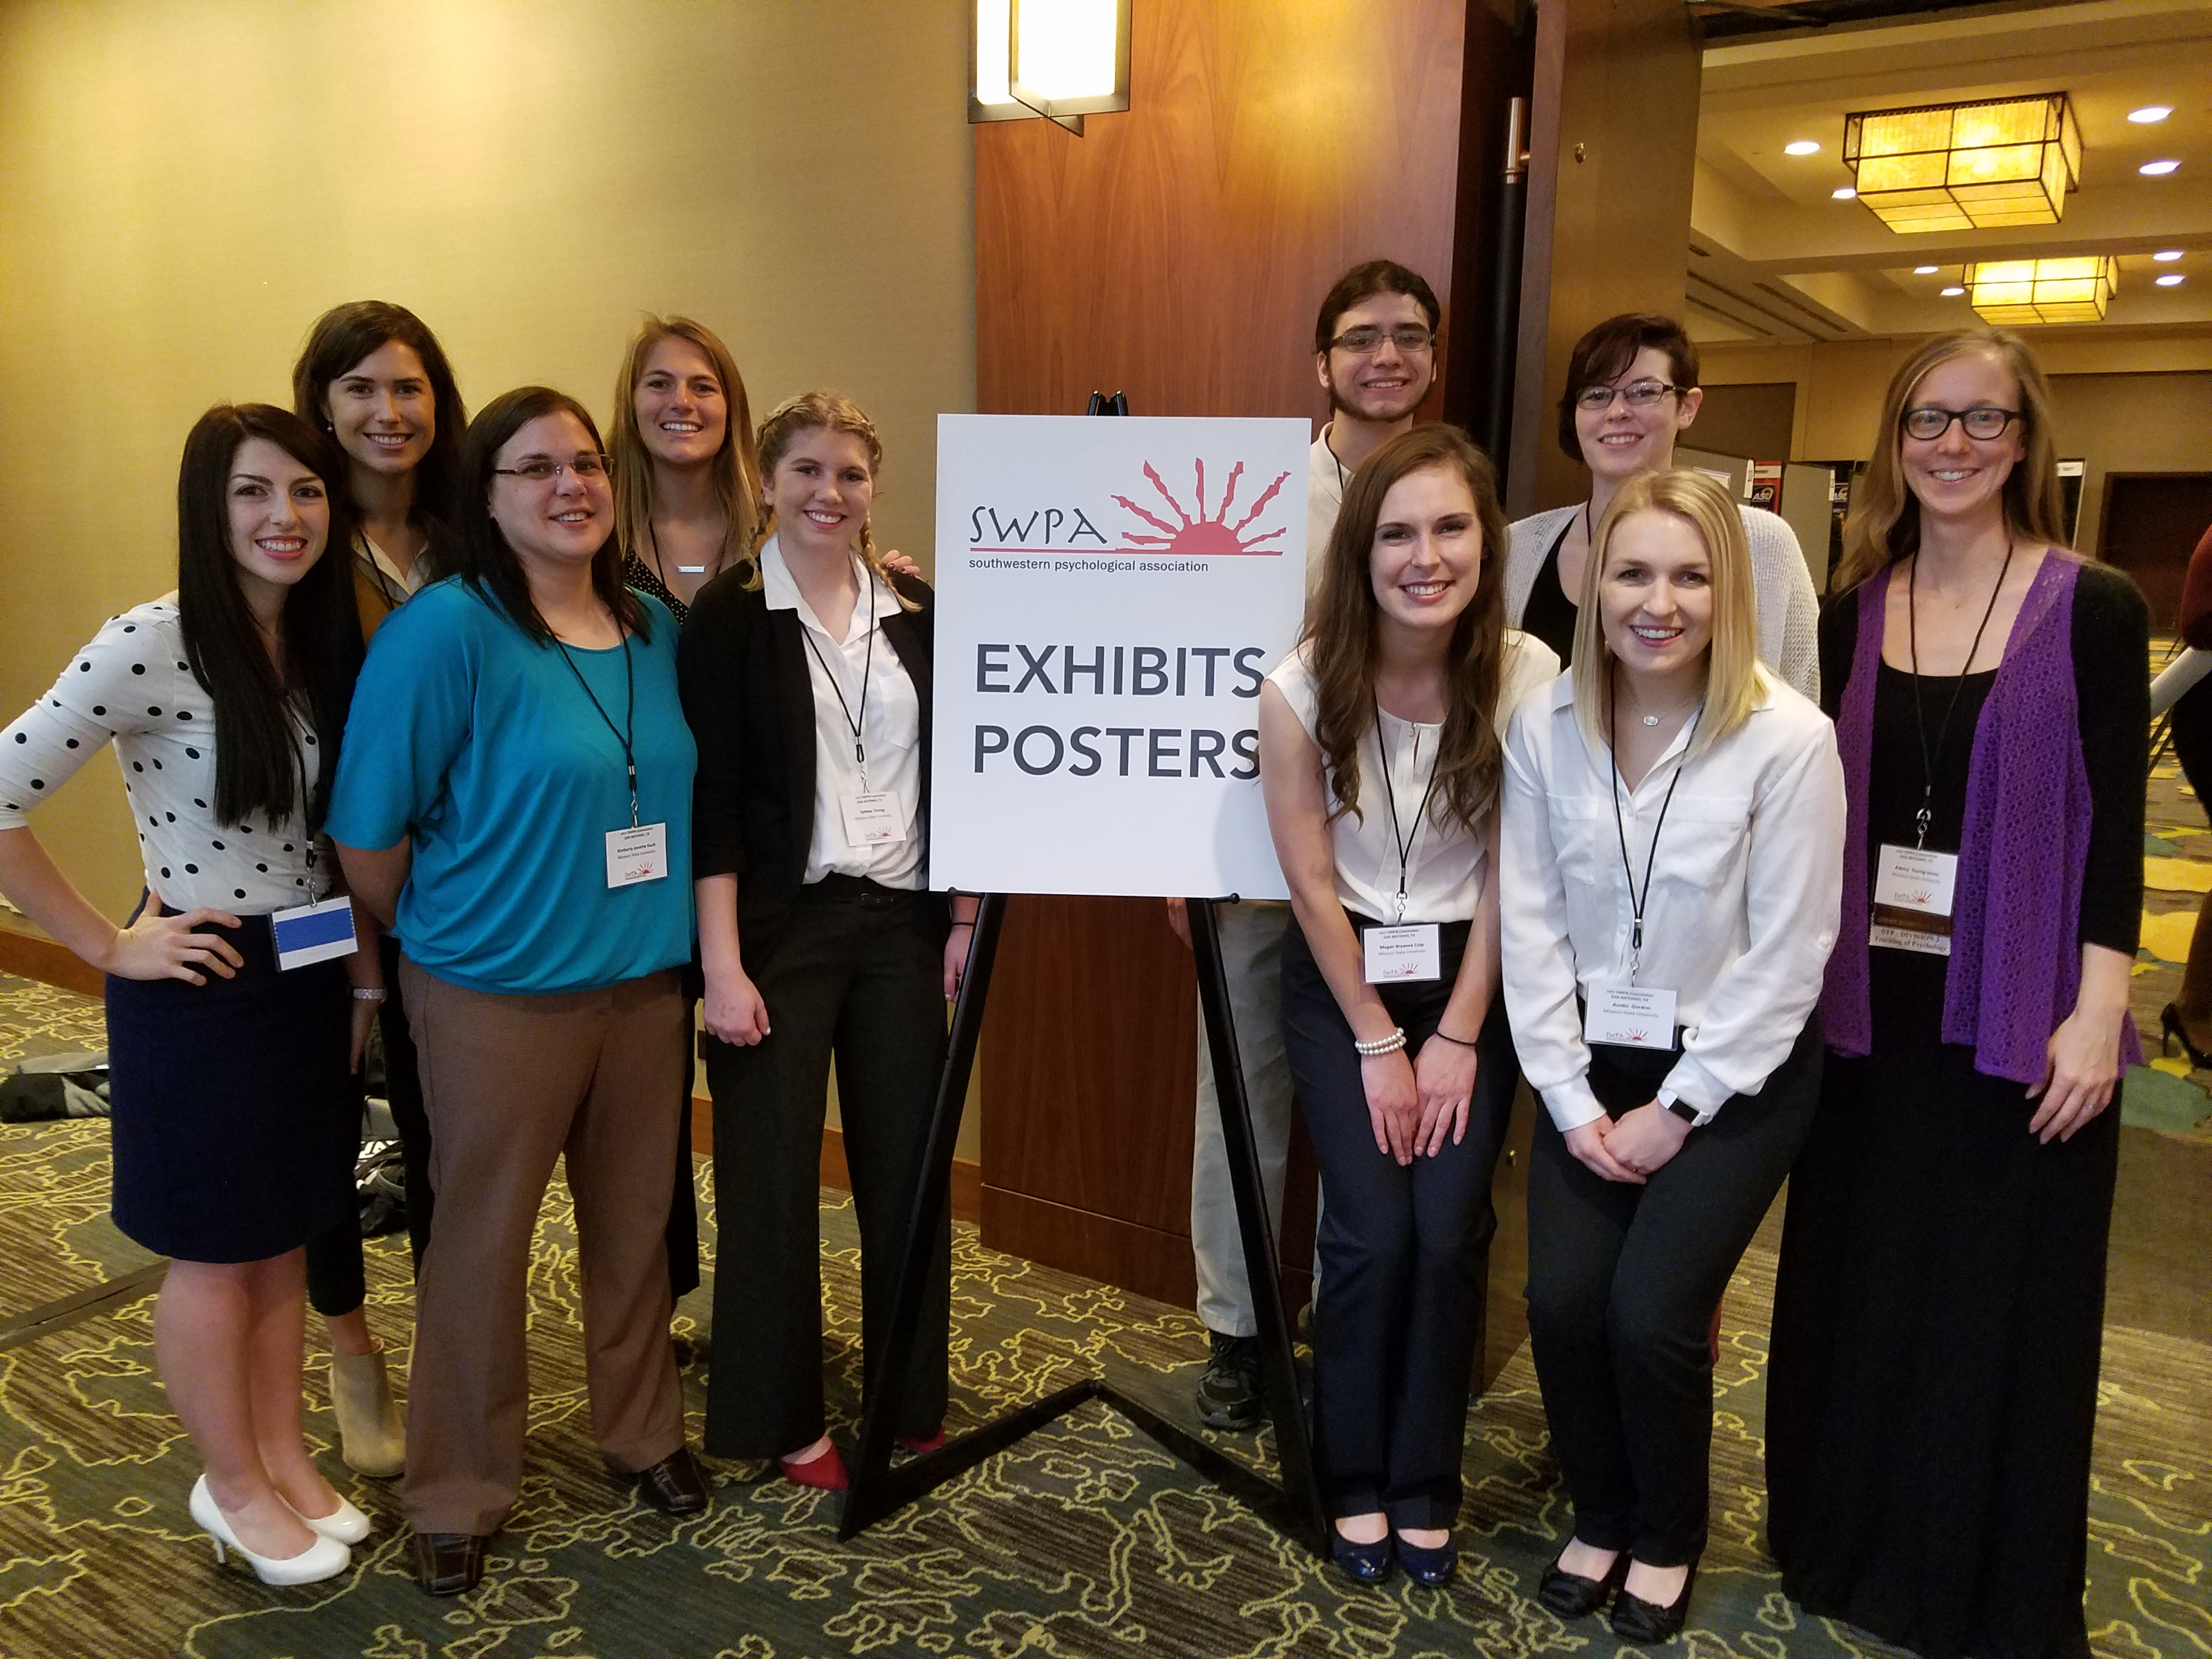 Psychology students present research at SWPA Conference